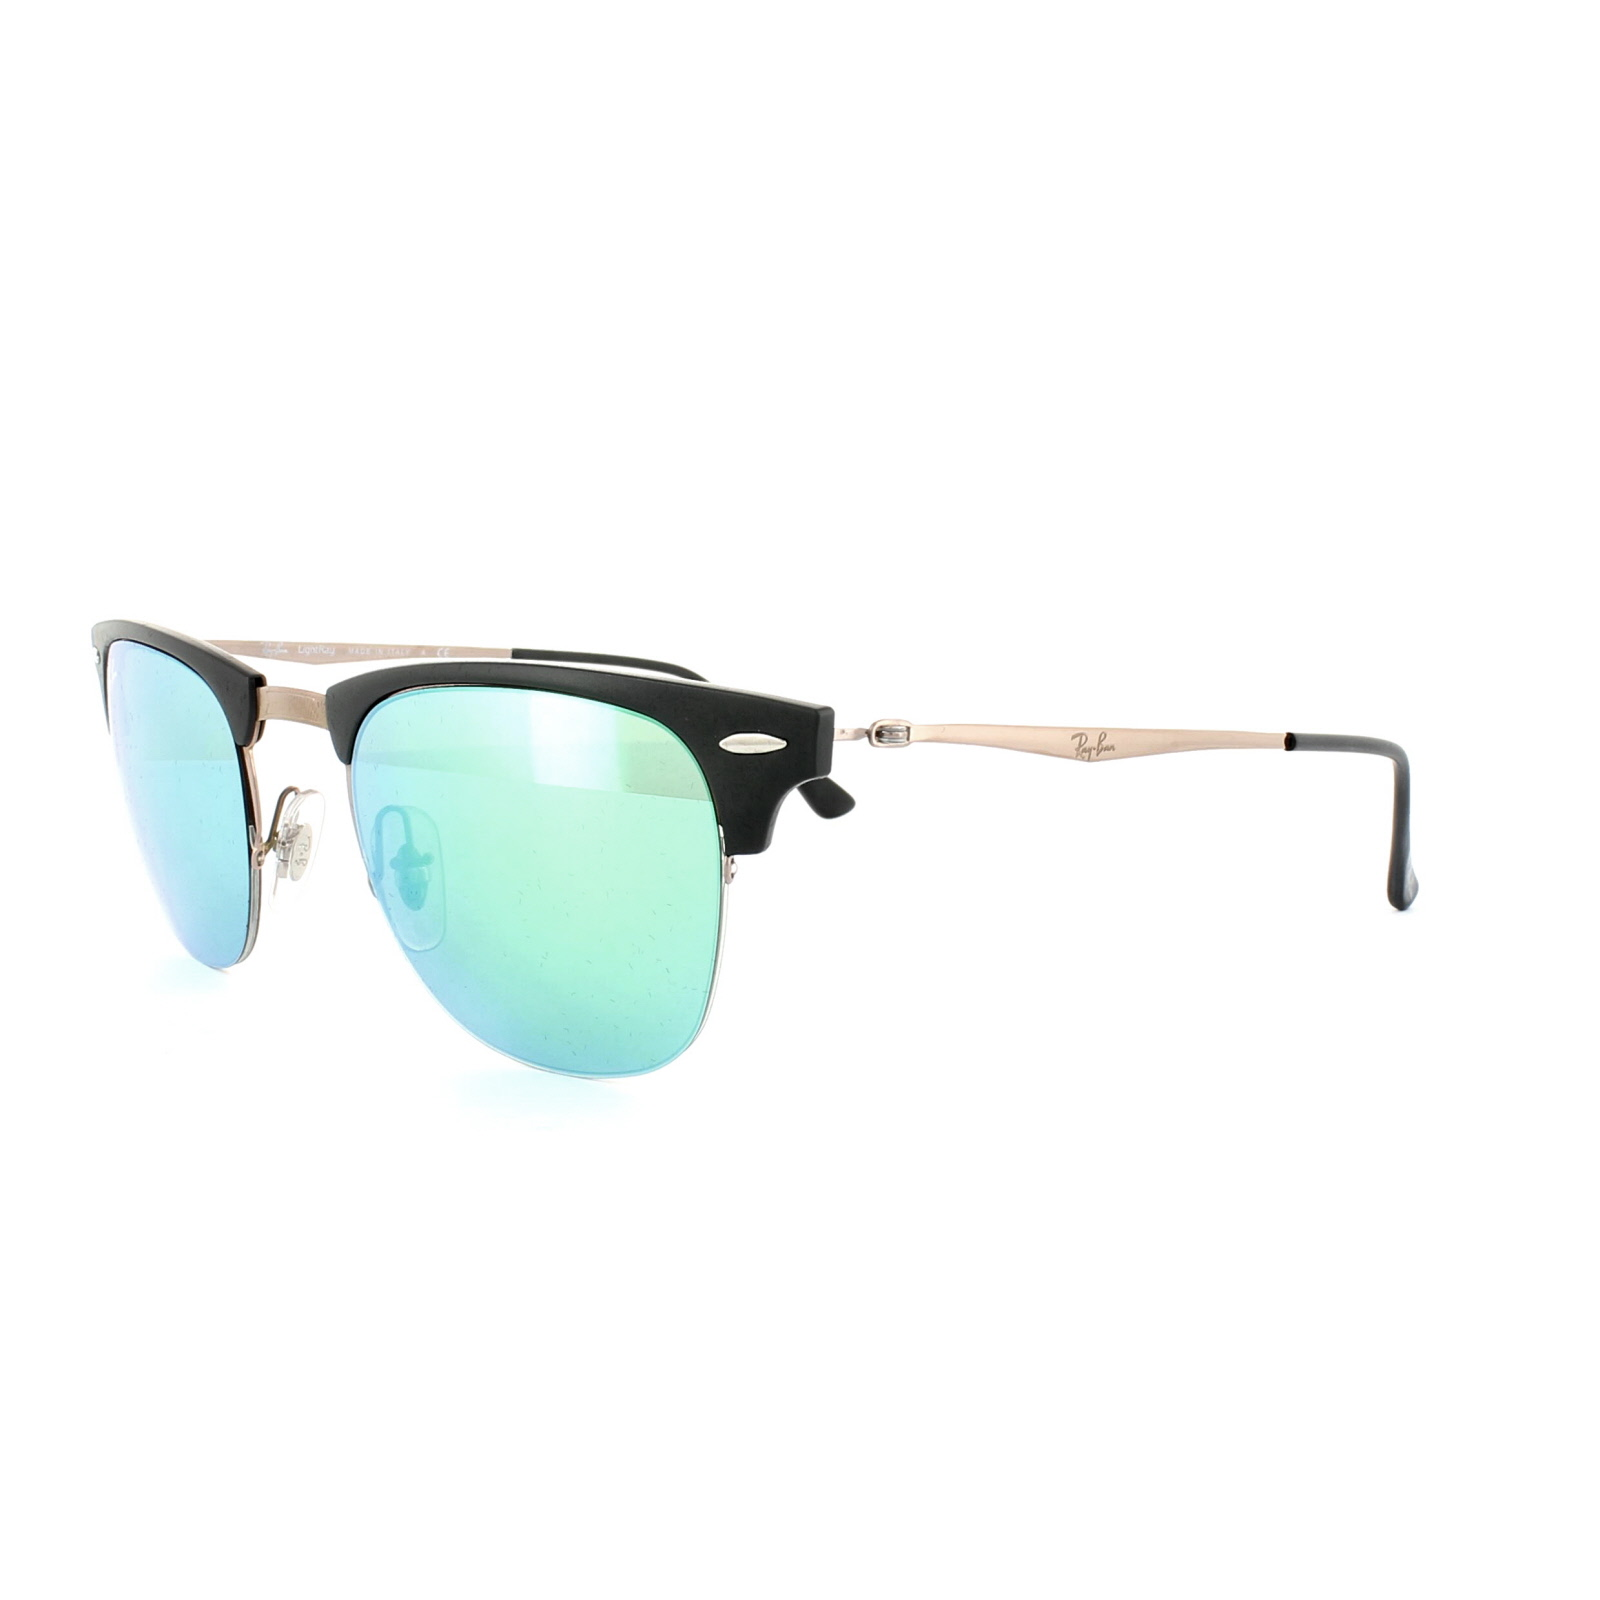 f6e75ecd1d Sentinel Ray-Ban Sunglasses Clubmaster Light Ray 8056 176 3R Black Brown  Green Mirror